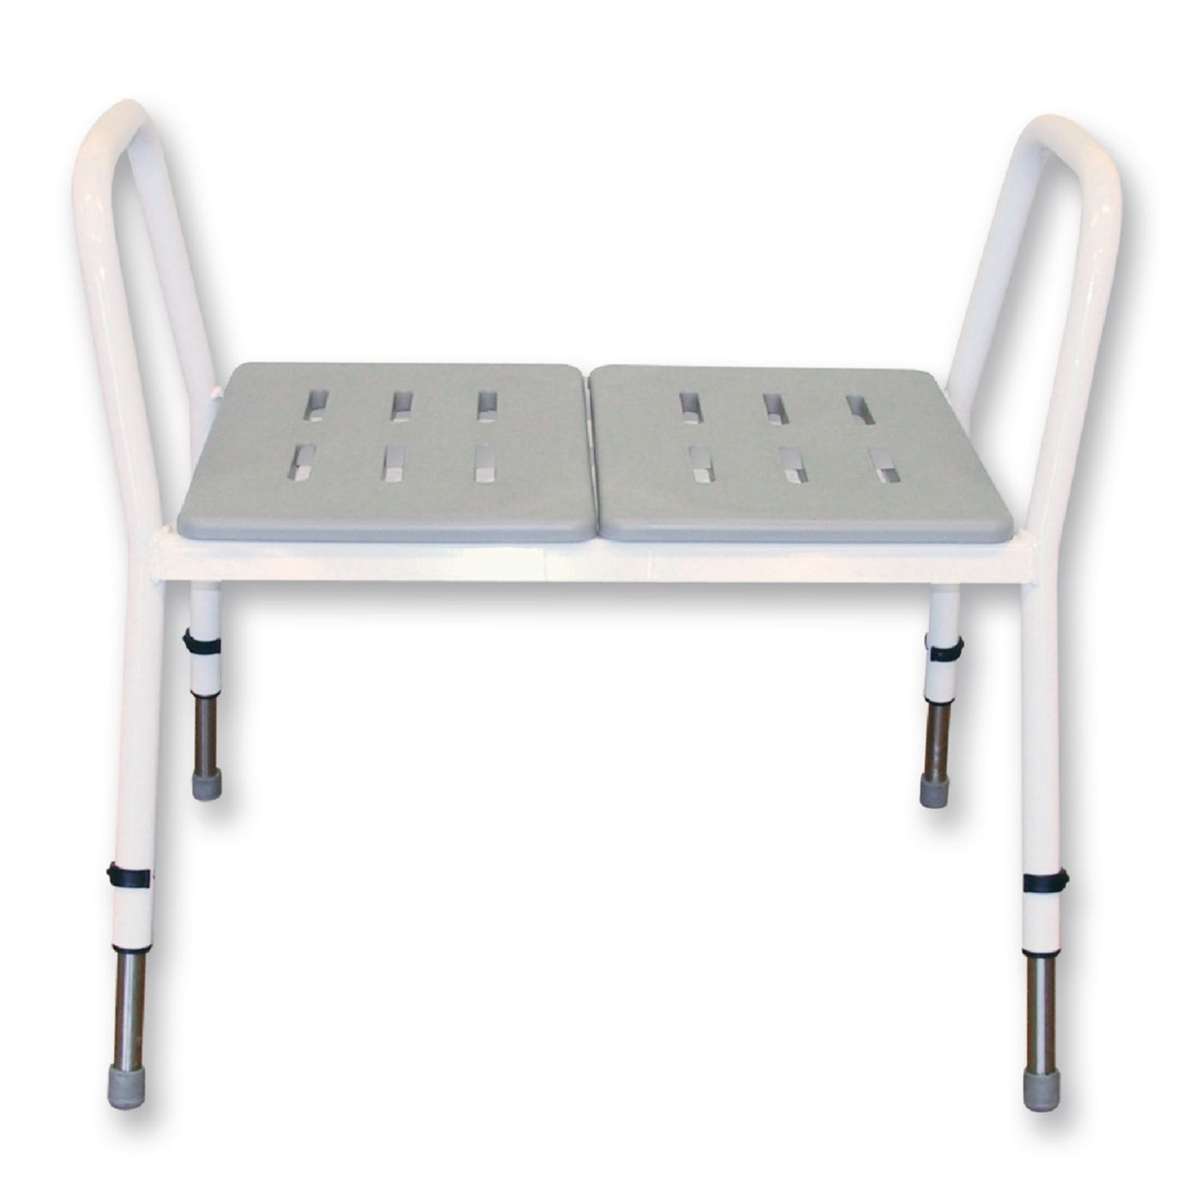 Patterson Medical 557512 Heavy Duty Shower Stool 2 Seat - 1 Each